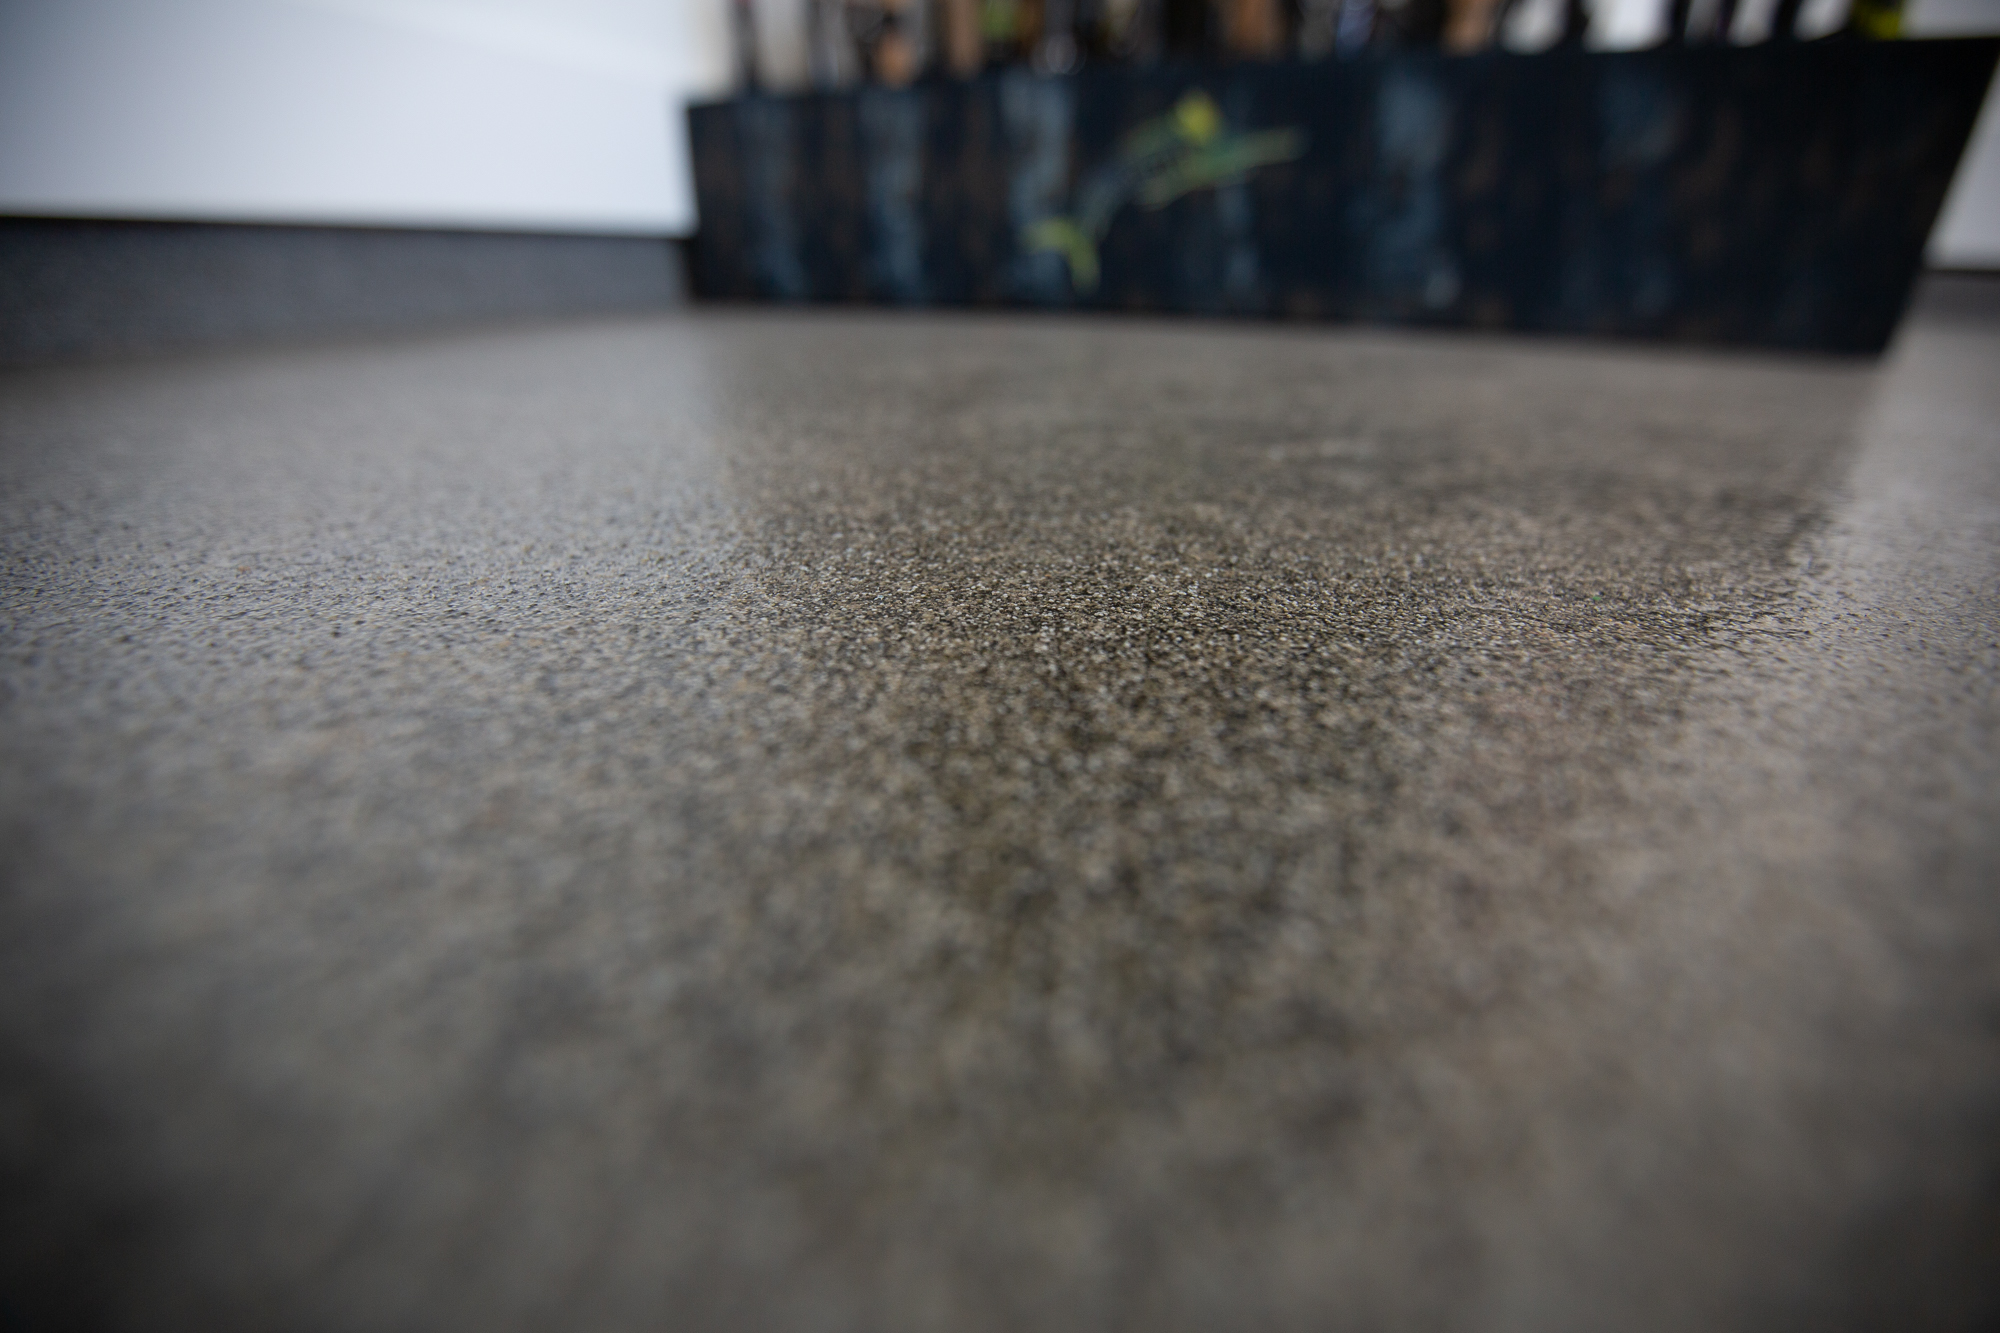 Resin Quartz - This is more impact resistant and skid resistant than any other epoxy flooring with a clean and modern look.